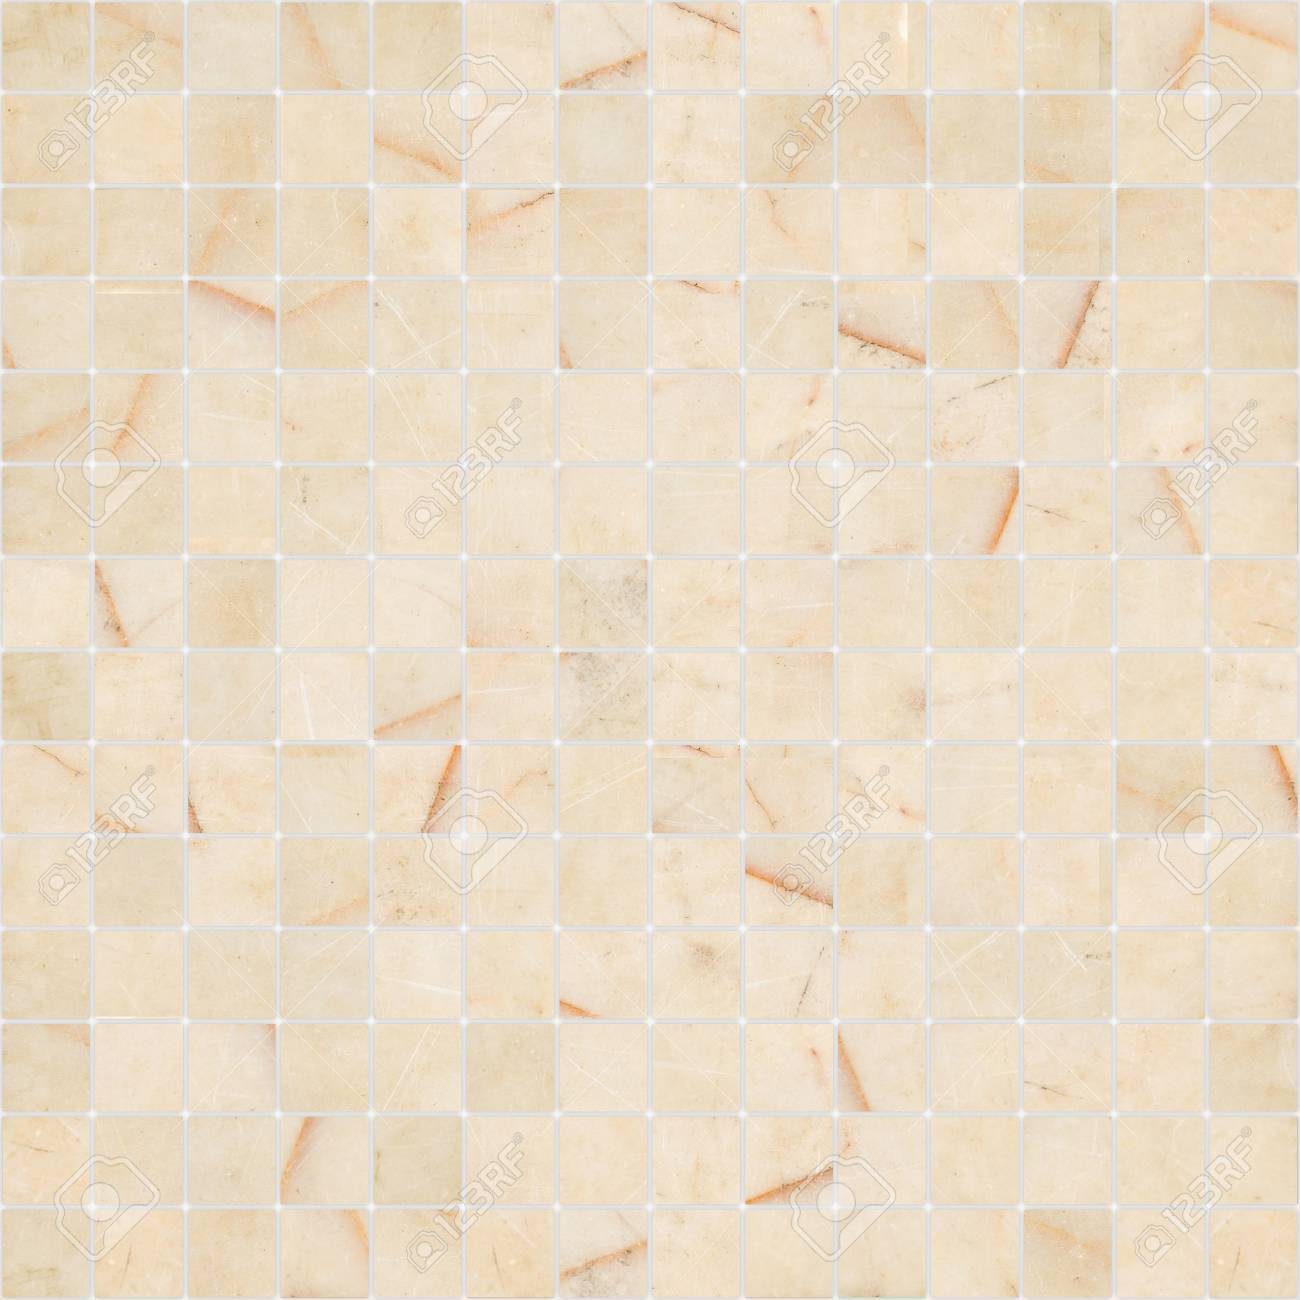 Yellow White Mosaic Marble Tile Texture Seamless Stock Photo Picture And Royalty Free Image Image 70886969